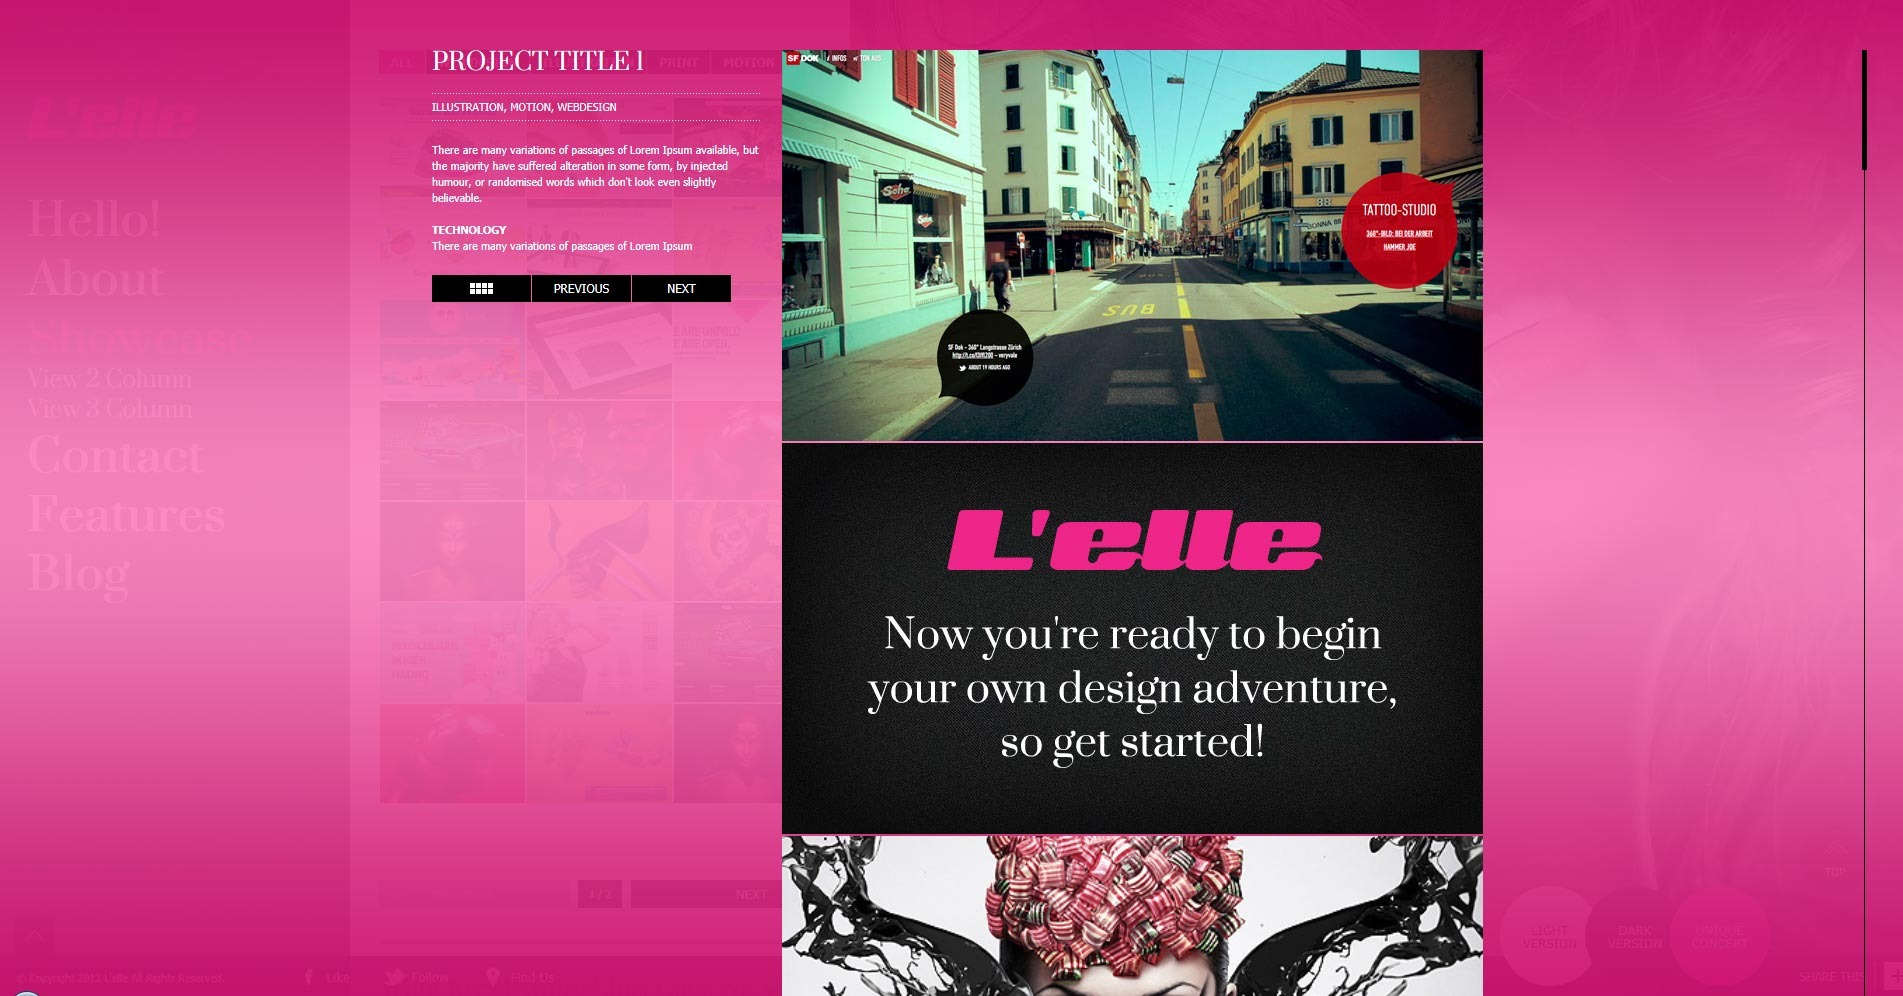 L'elle Creative Agency Showcase - showcase overlay item detail content opened